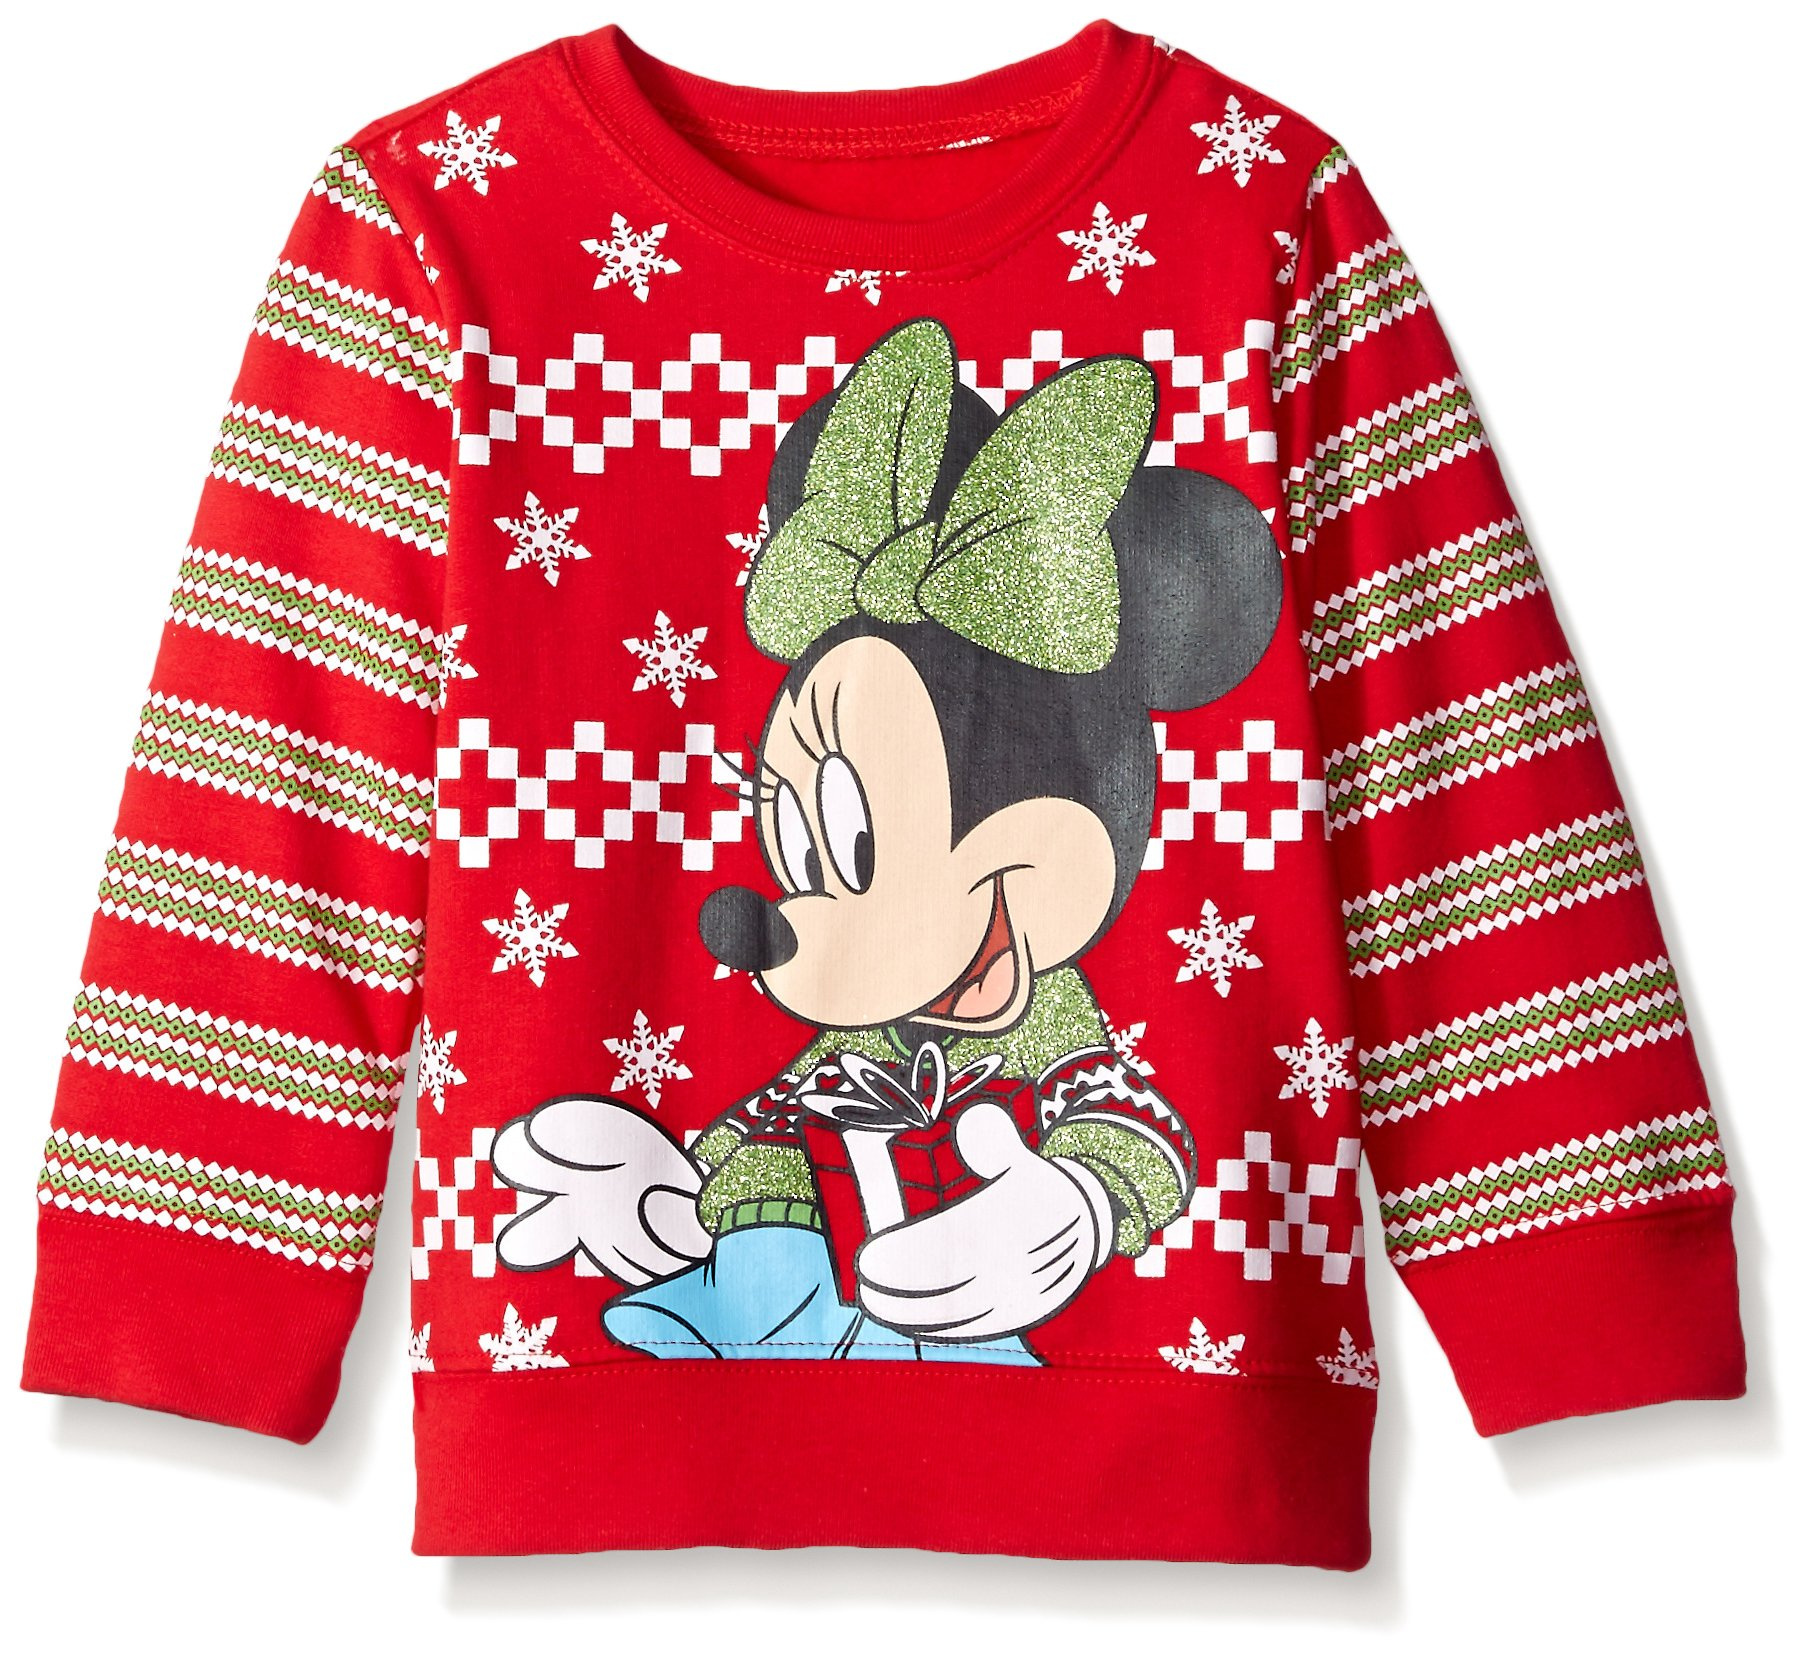 Disney Little Girls' Minnie Mouse with Gift Toddler Nordic Crew Neck Sweater, Red, 4T